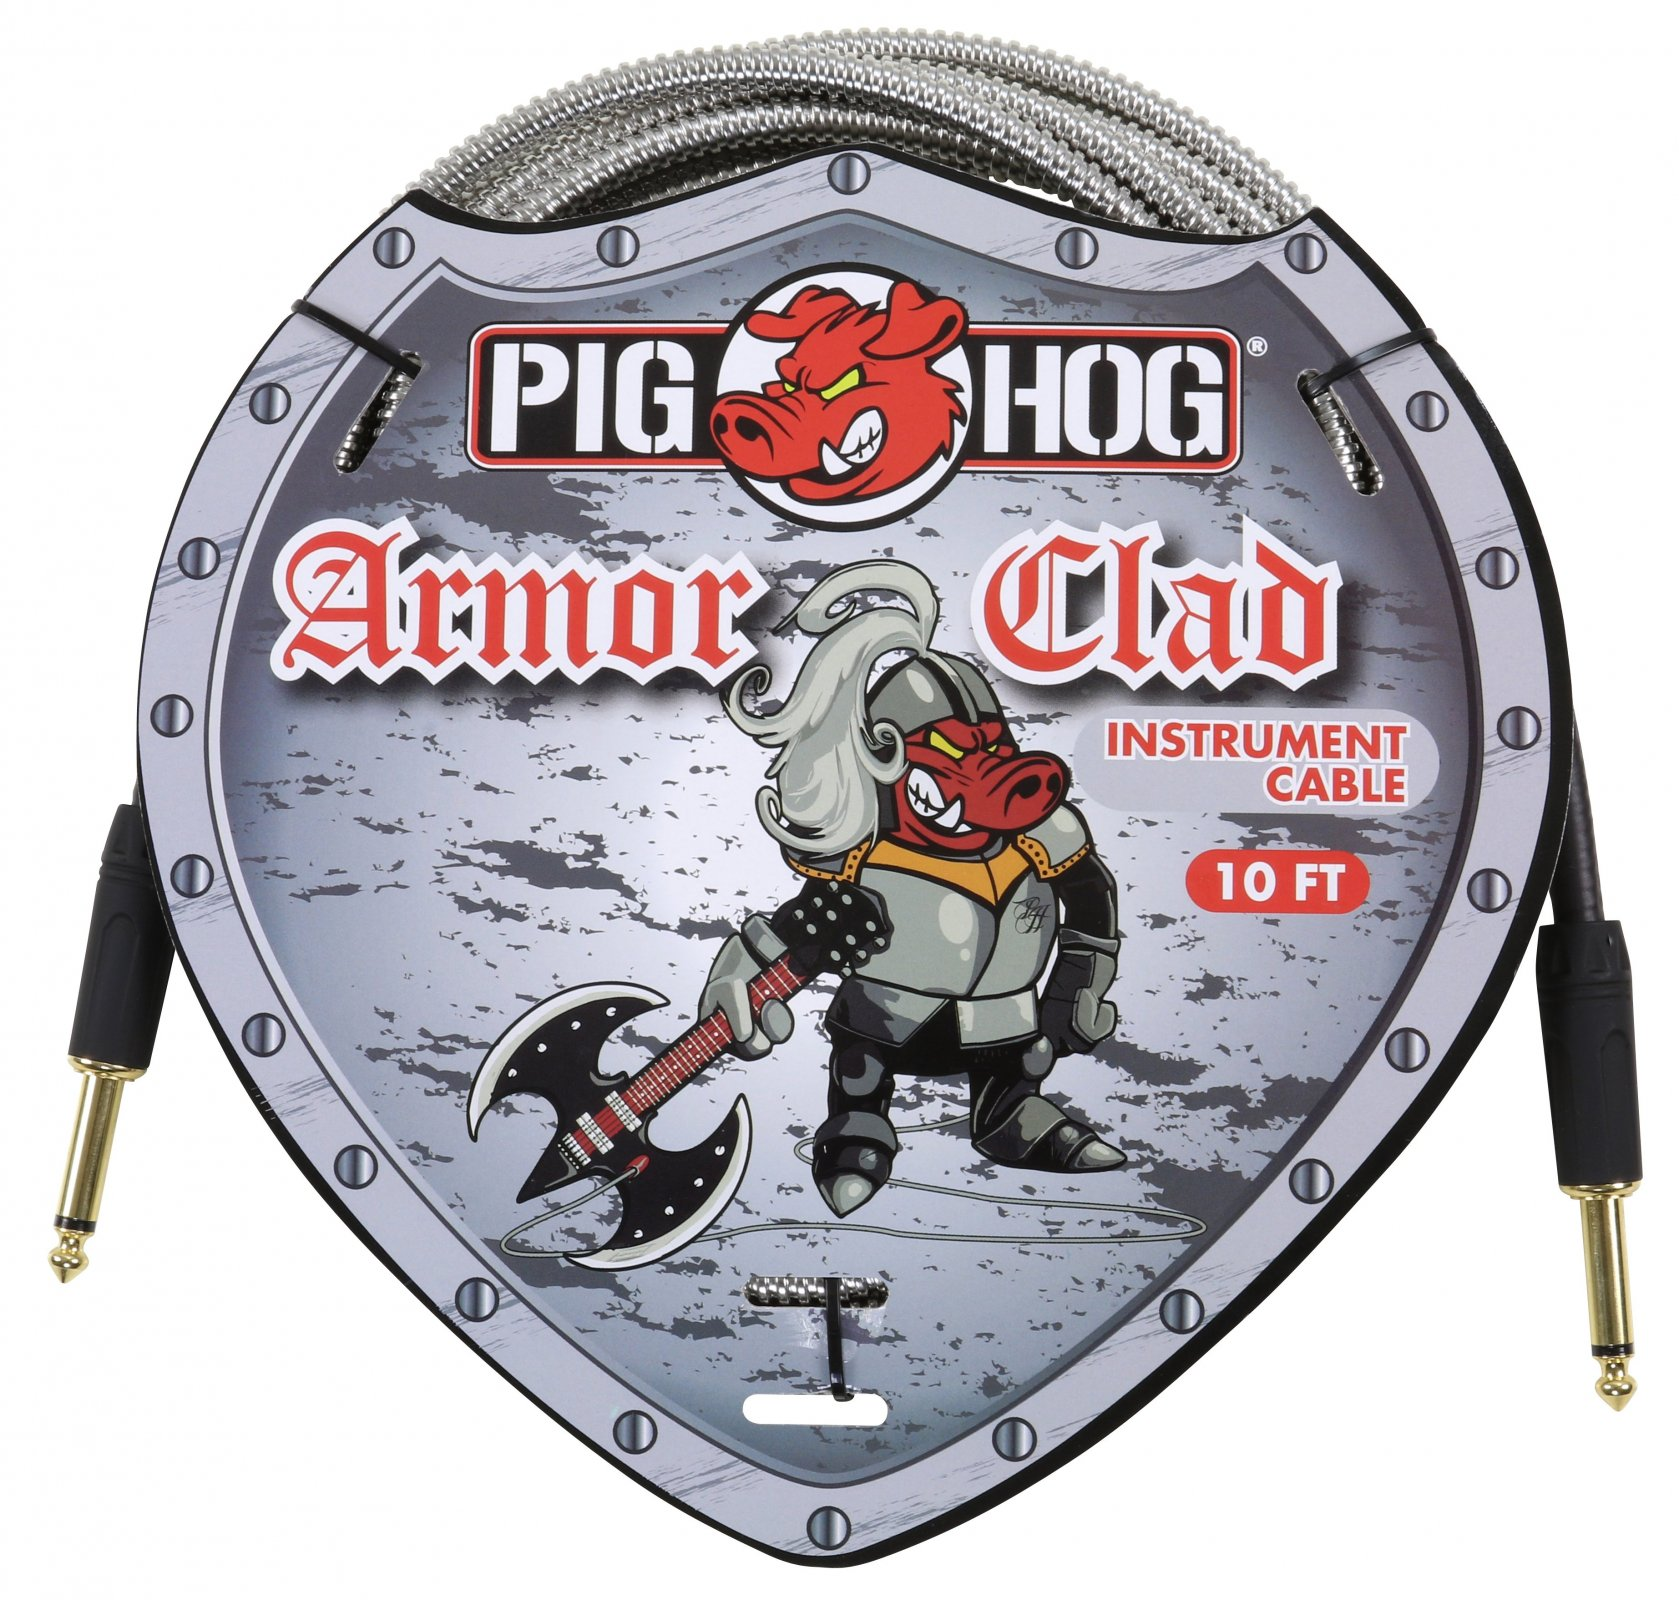 Pig Hog Armor Clad Instrument Cable - 10ft